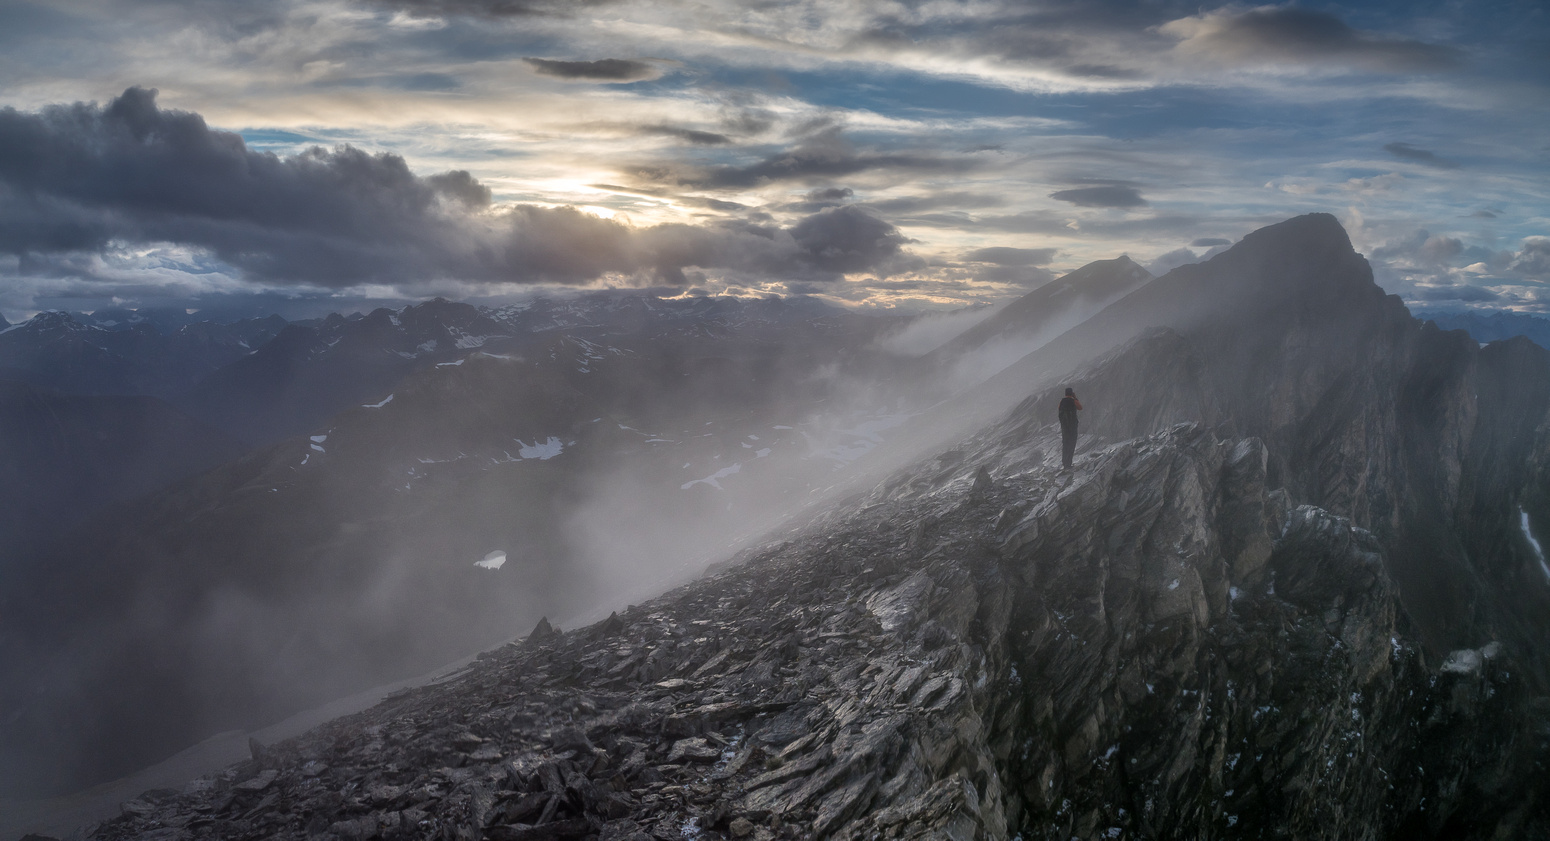 Very dramatic scenery as we continue to navigate the ridge to Fatigue Pass after the storm.